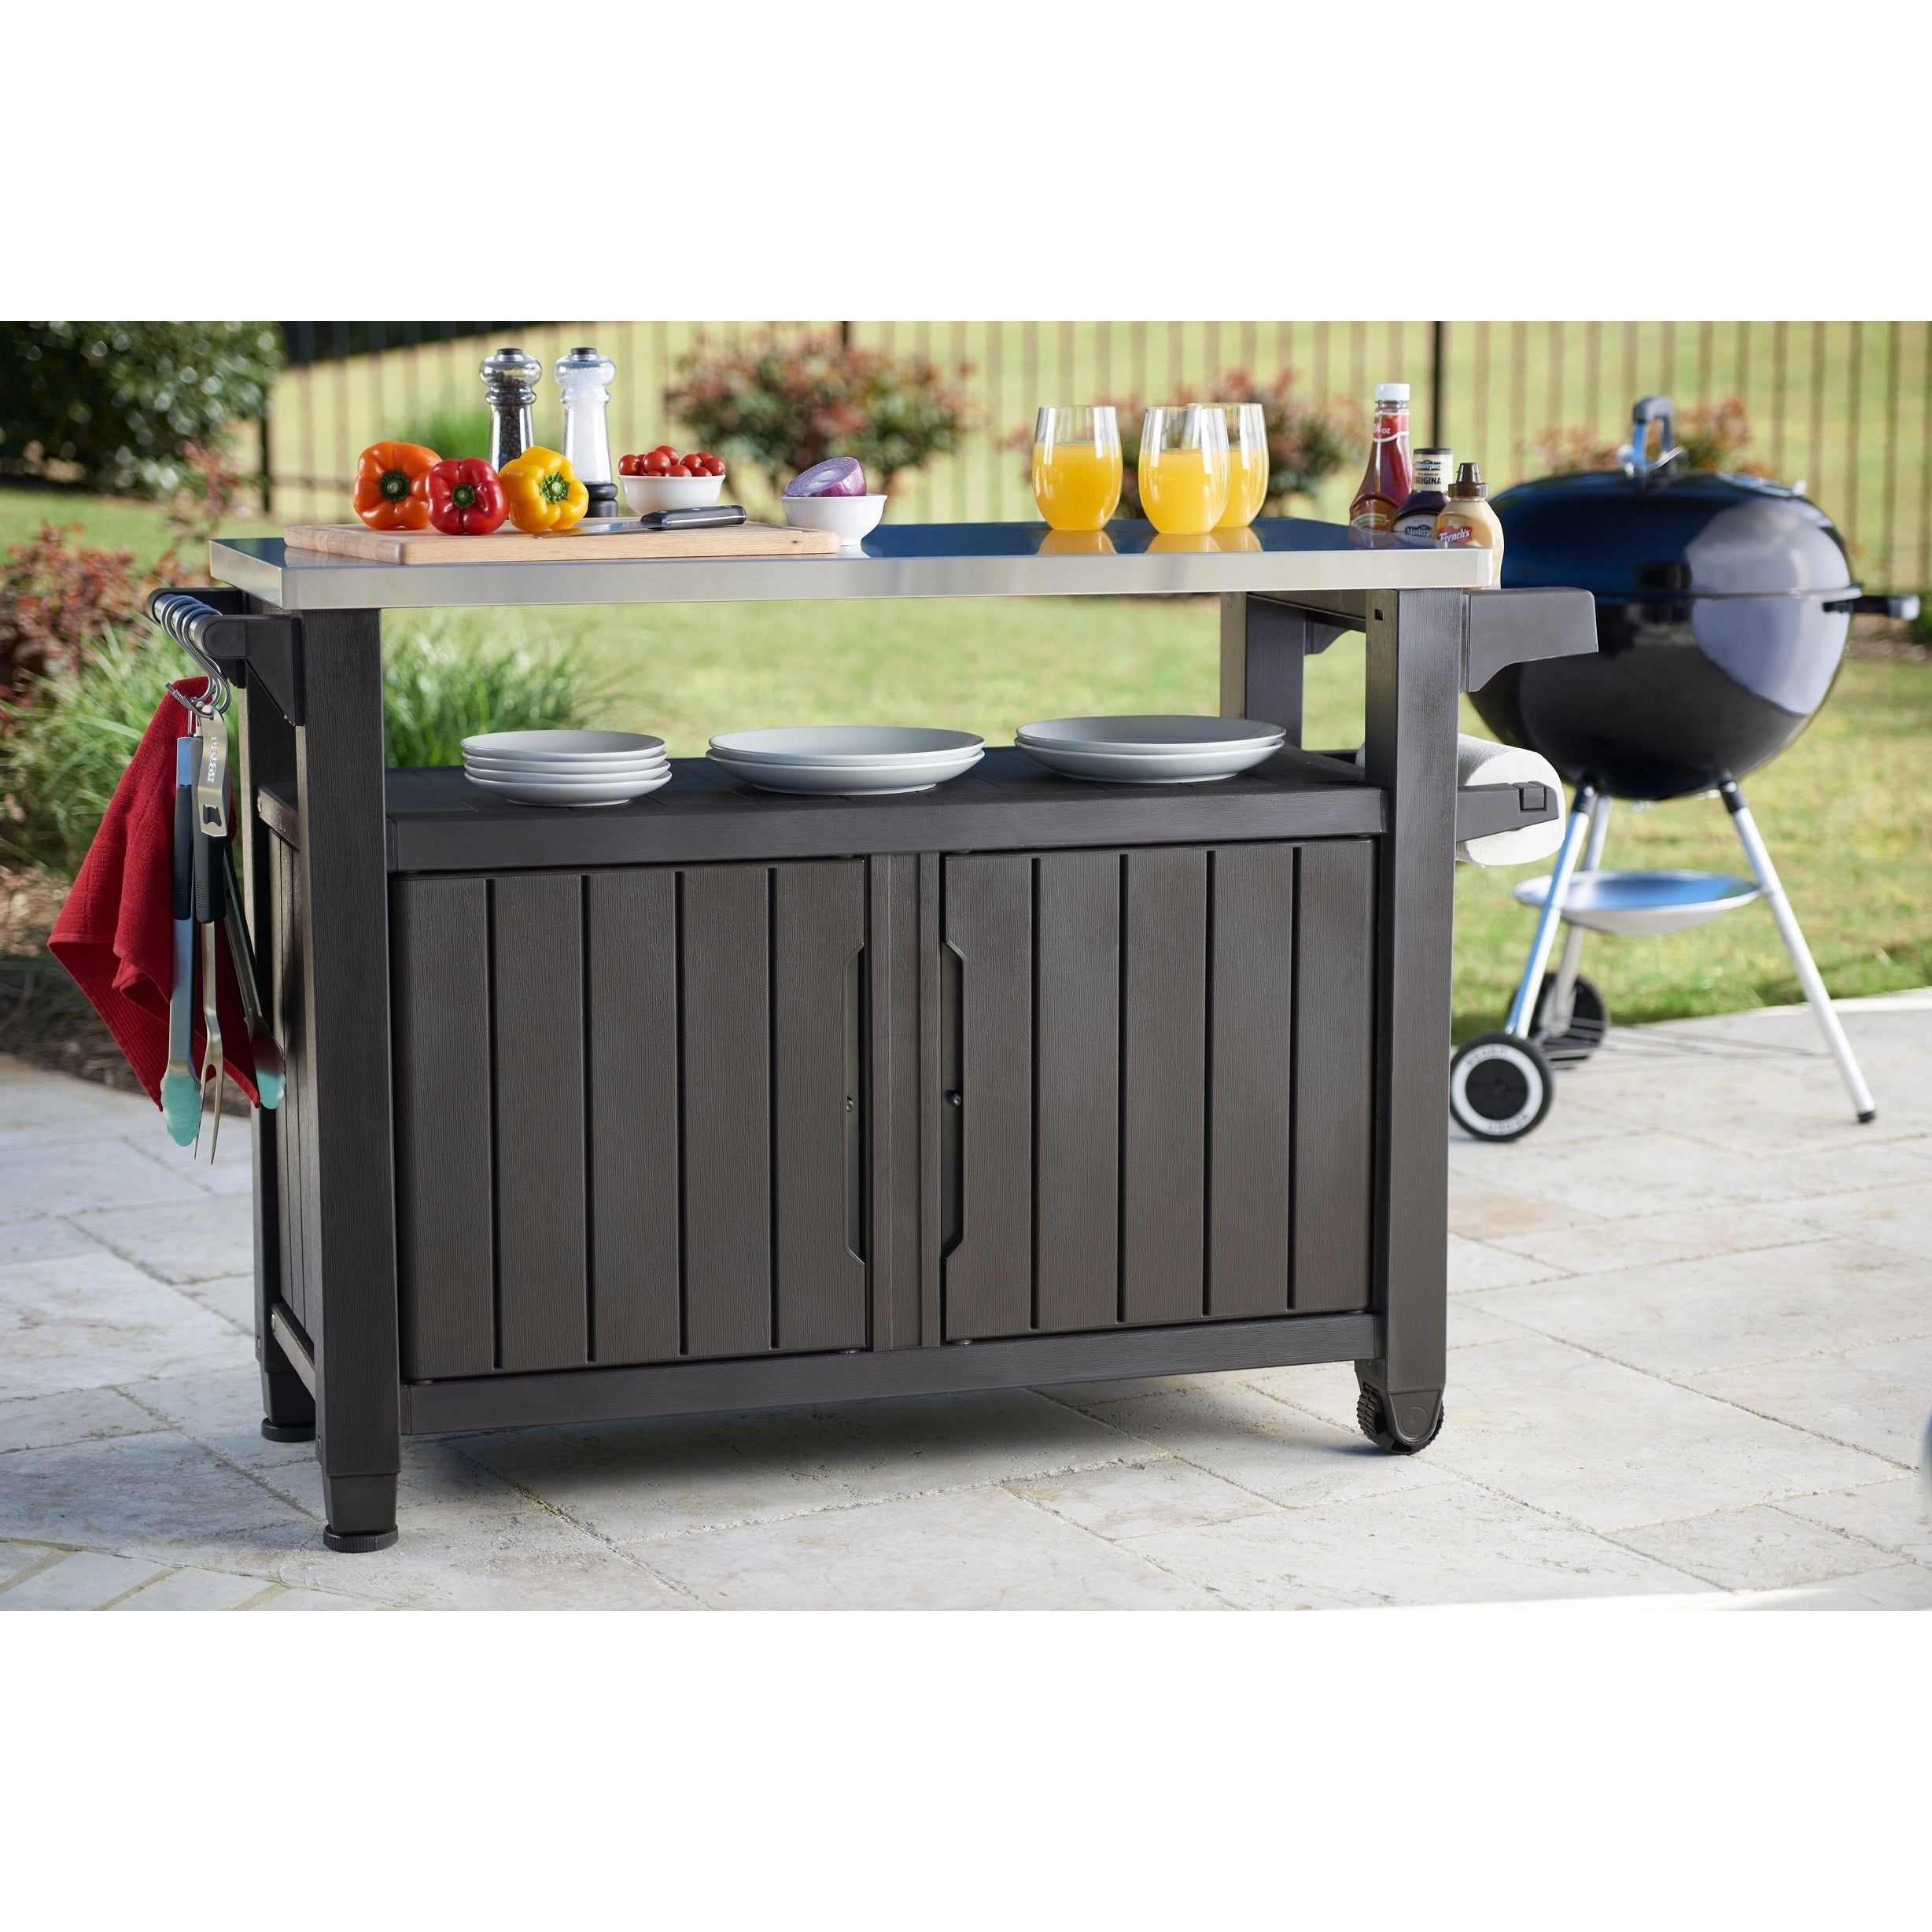 Exceptionnel Shop Keter Unity XL Indoor Outdoor Serving Cart Prep Station With Storage    Free Shipping Today   Overstock.com   17853968